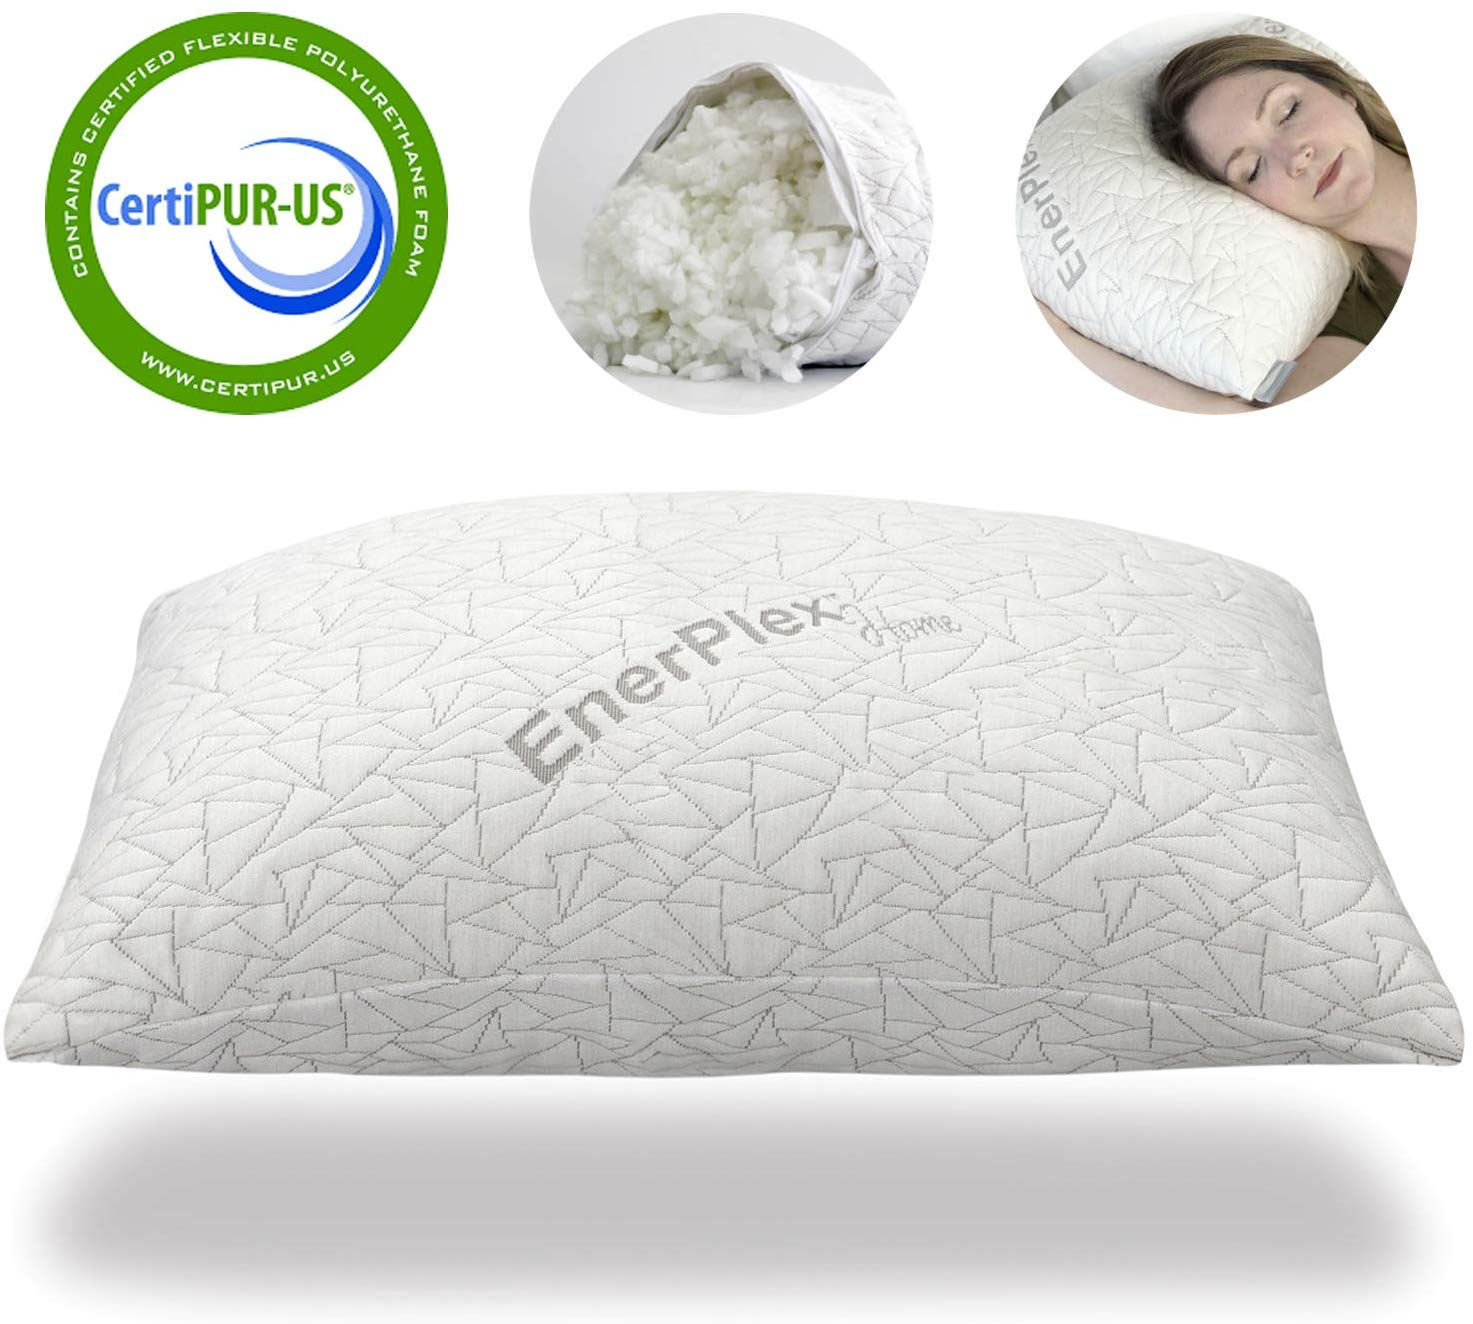 Bamboo Shredded Memory Foam Pillow,Made In USA,Queen,King,Standard,Travel